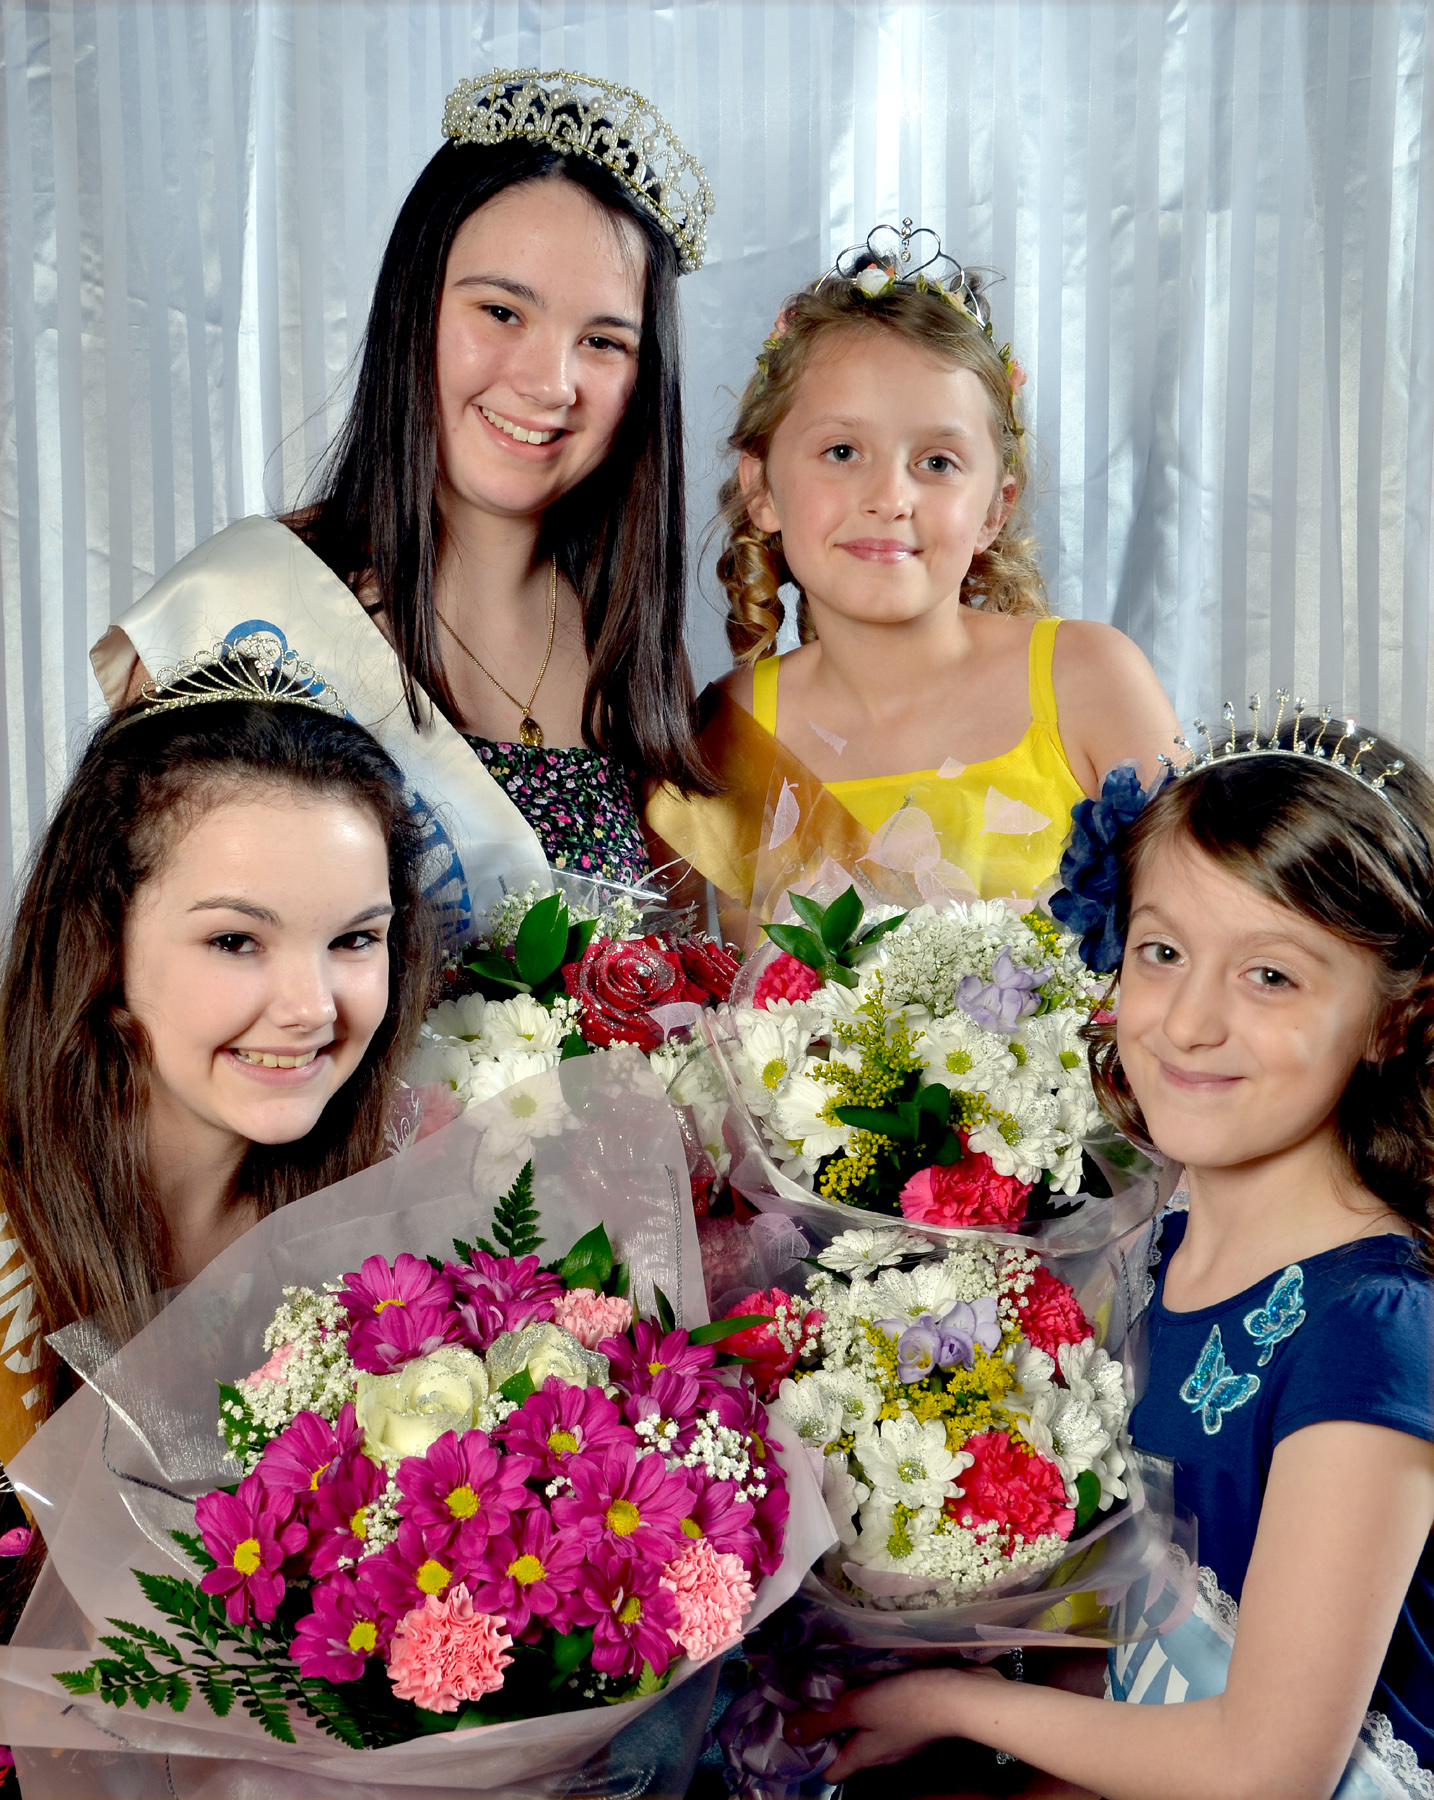 ROYAL APPOINTMENT: From left, top, carnival queen Jessica Campbell and rosebud Millie Hodgkins, with, bottom, princess Paige Rundle and rosebud Alice Hickey.